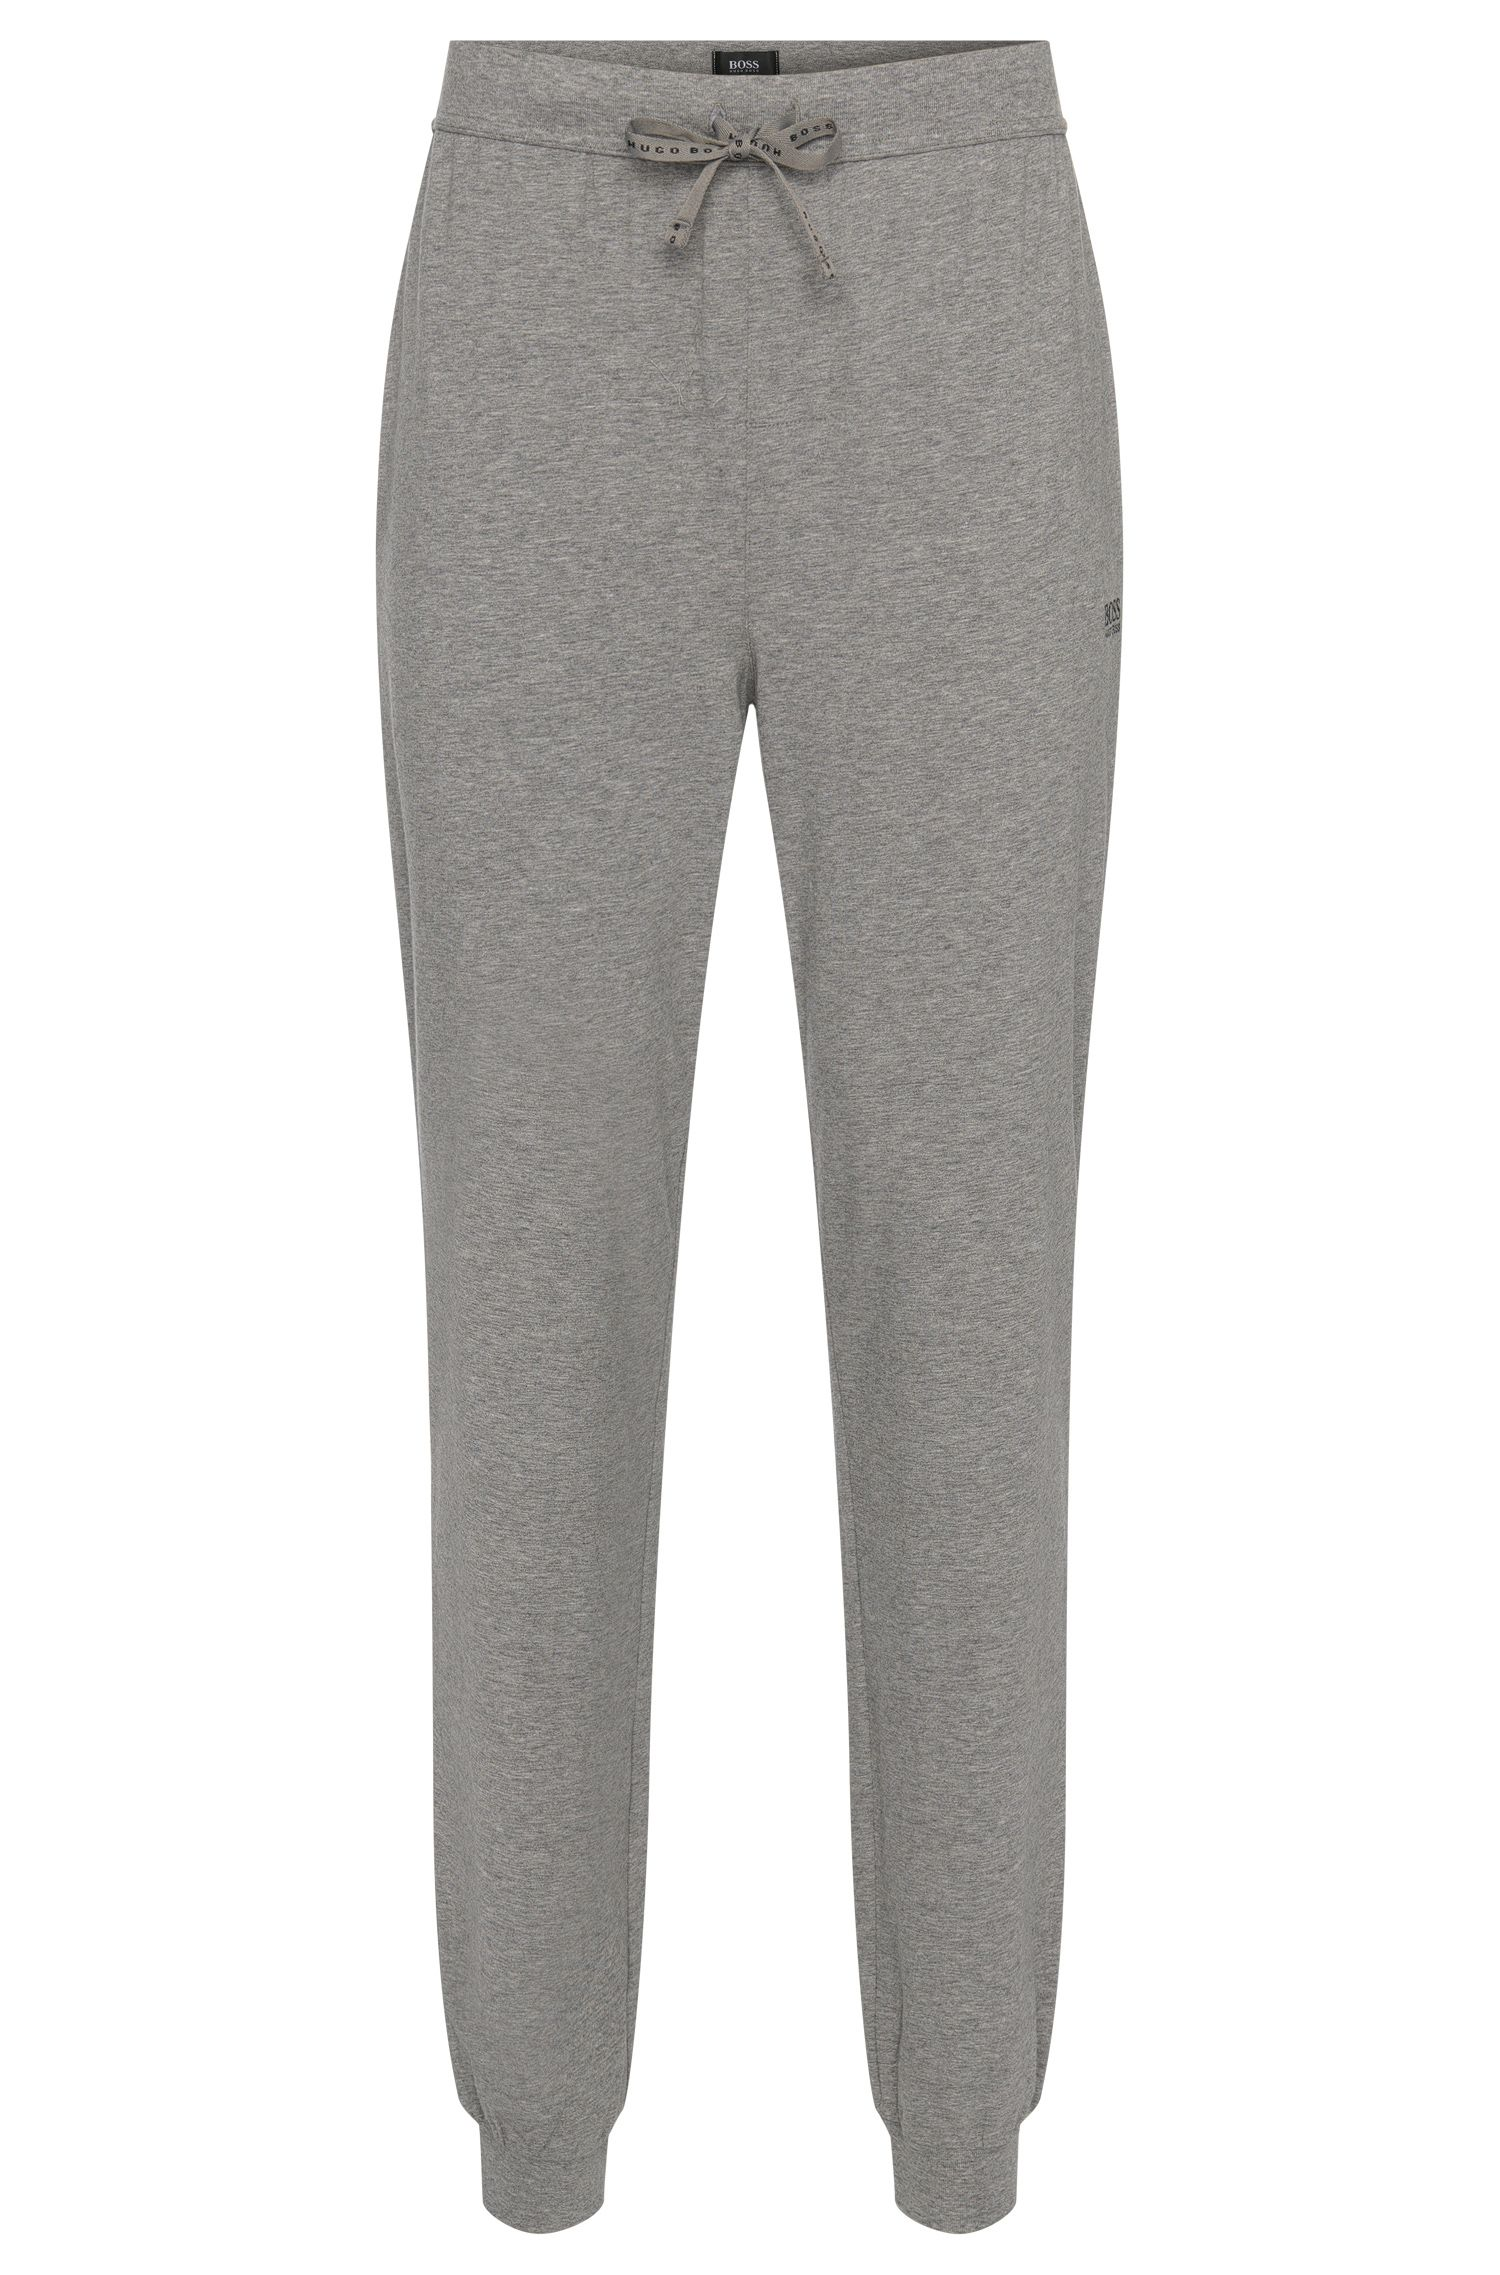 Sweathose aus Stretch-Baumwolle mit Tunnelzug: 'Long Pant CW Cuffs'